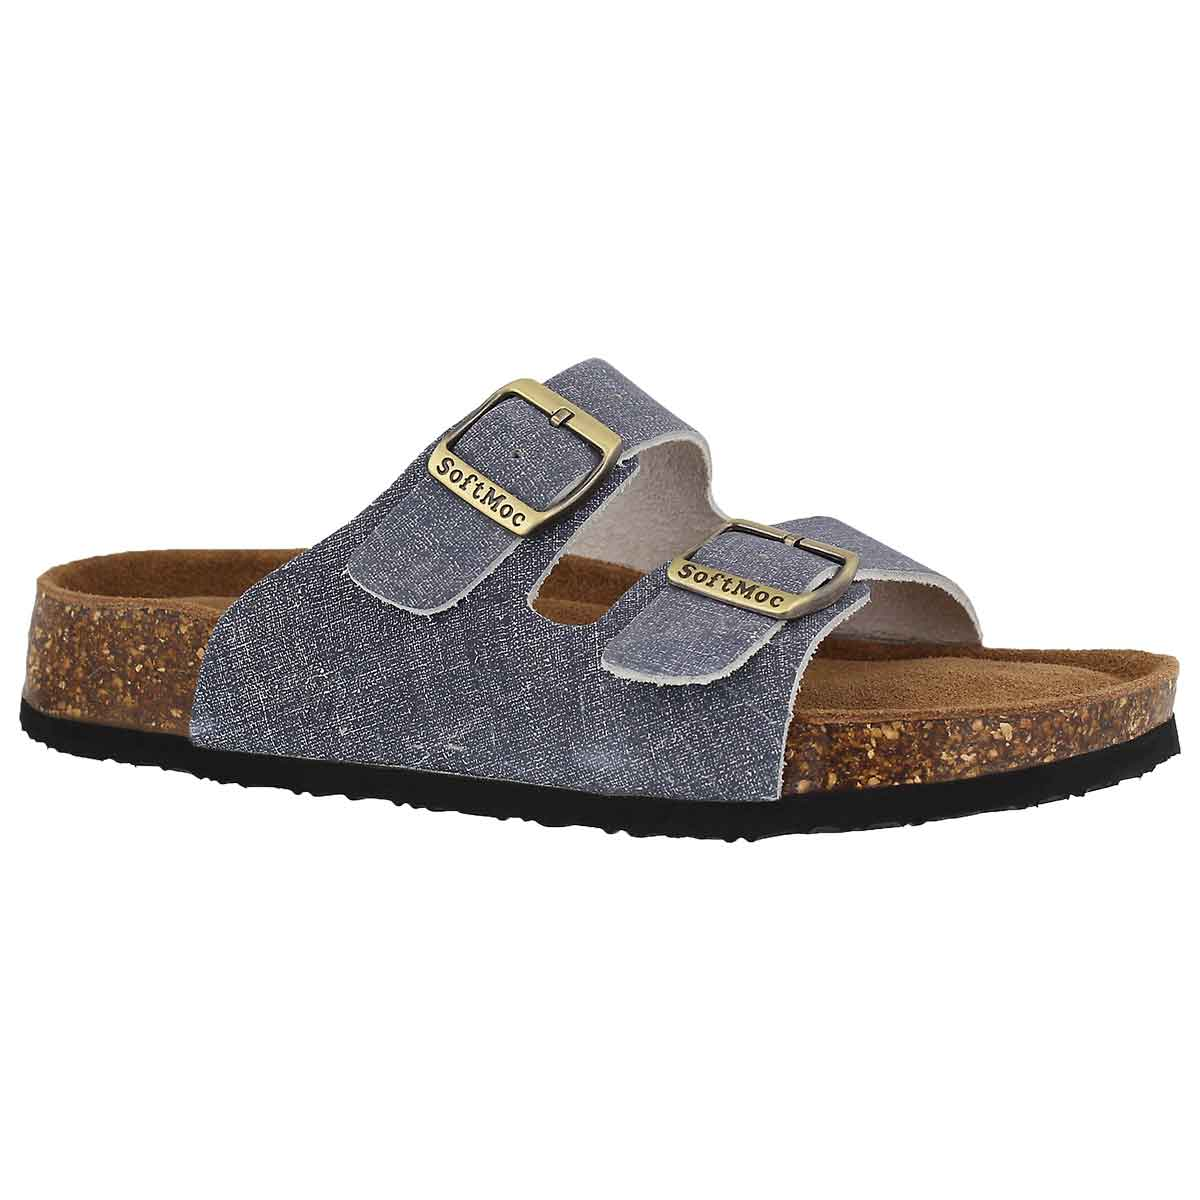 Women's ANNA 5 denim memory foam slide sandals